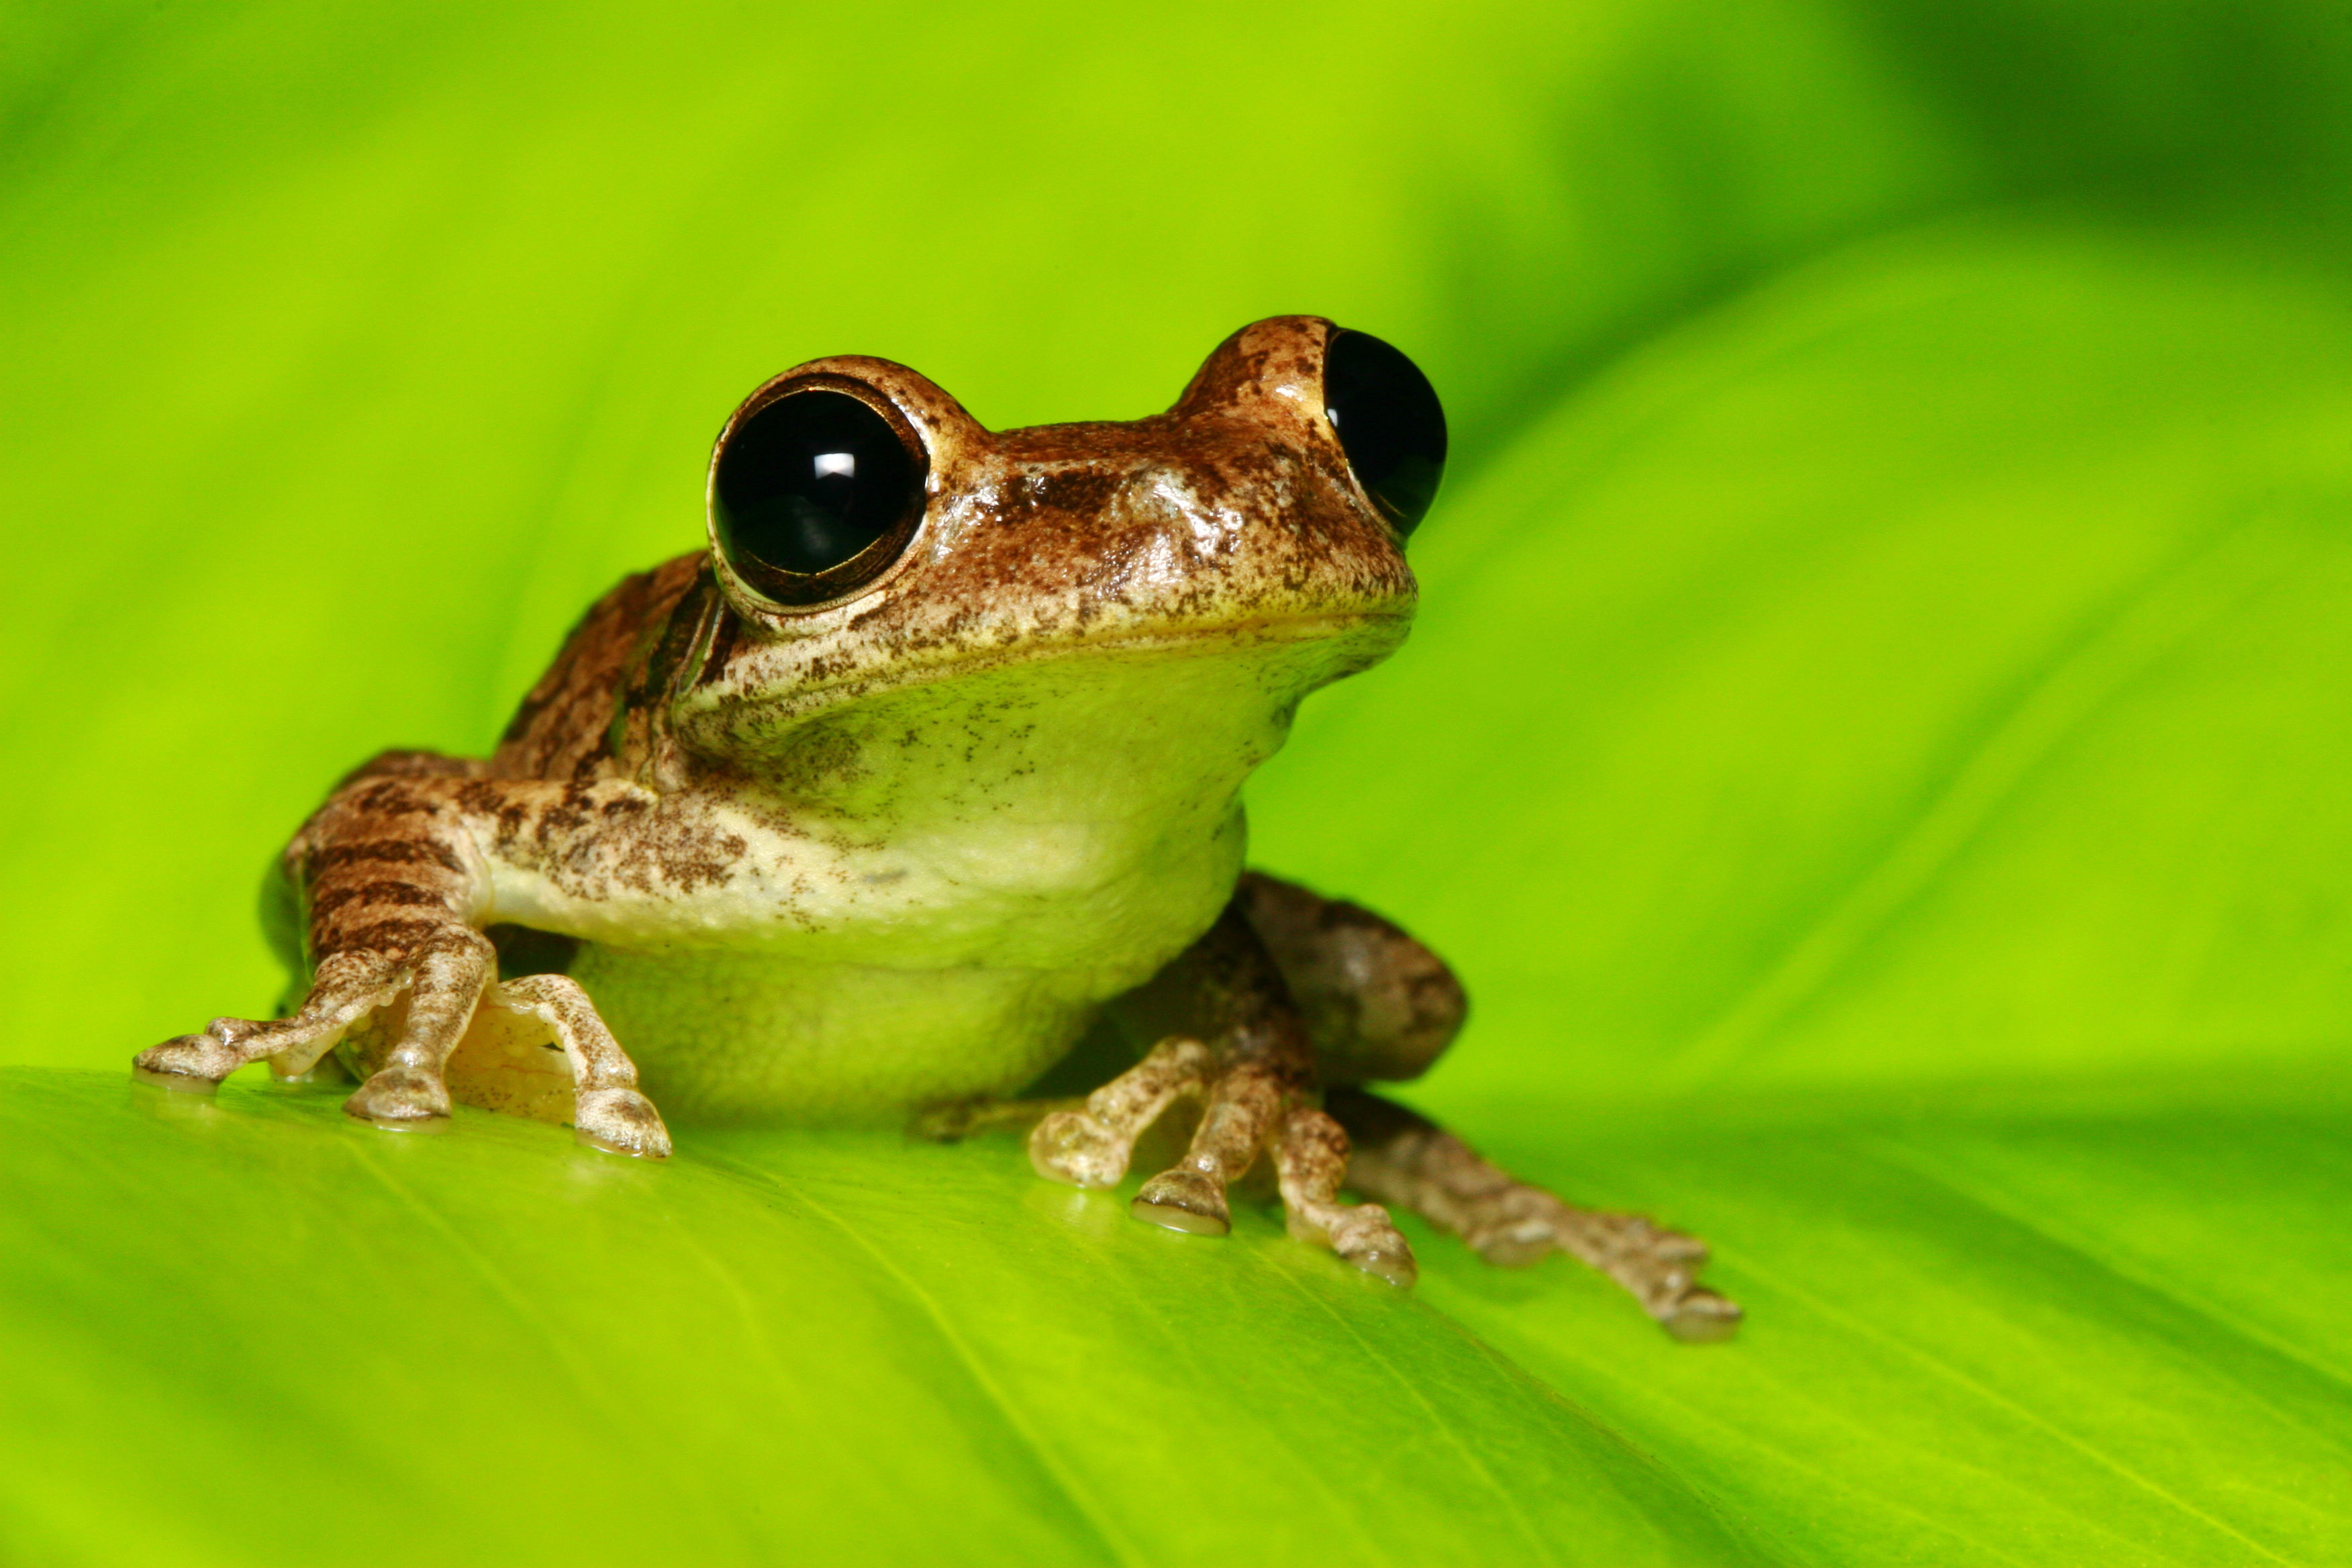 In Frogs, Early Activity of Gut Microbiome Shapes Later Health